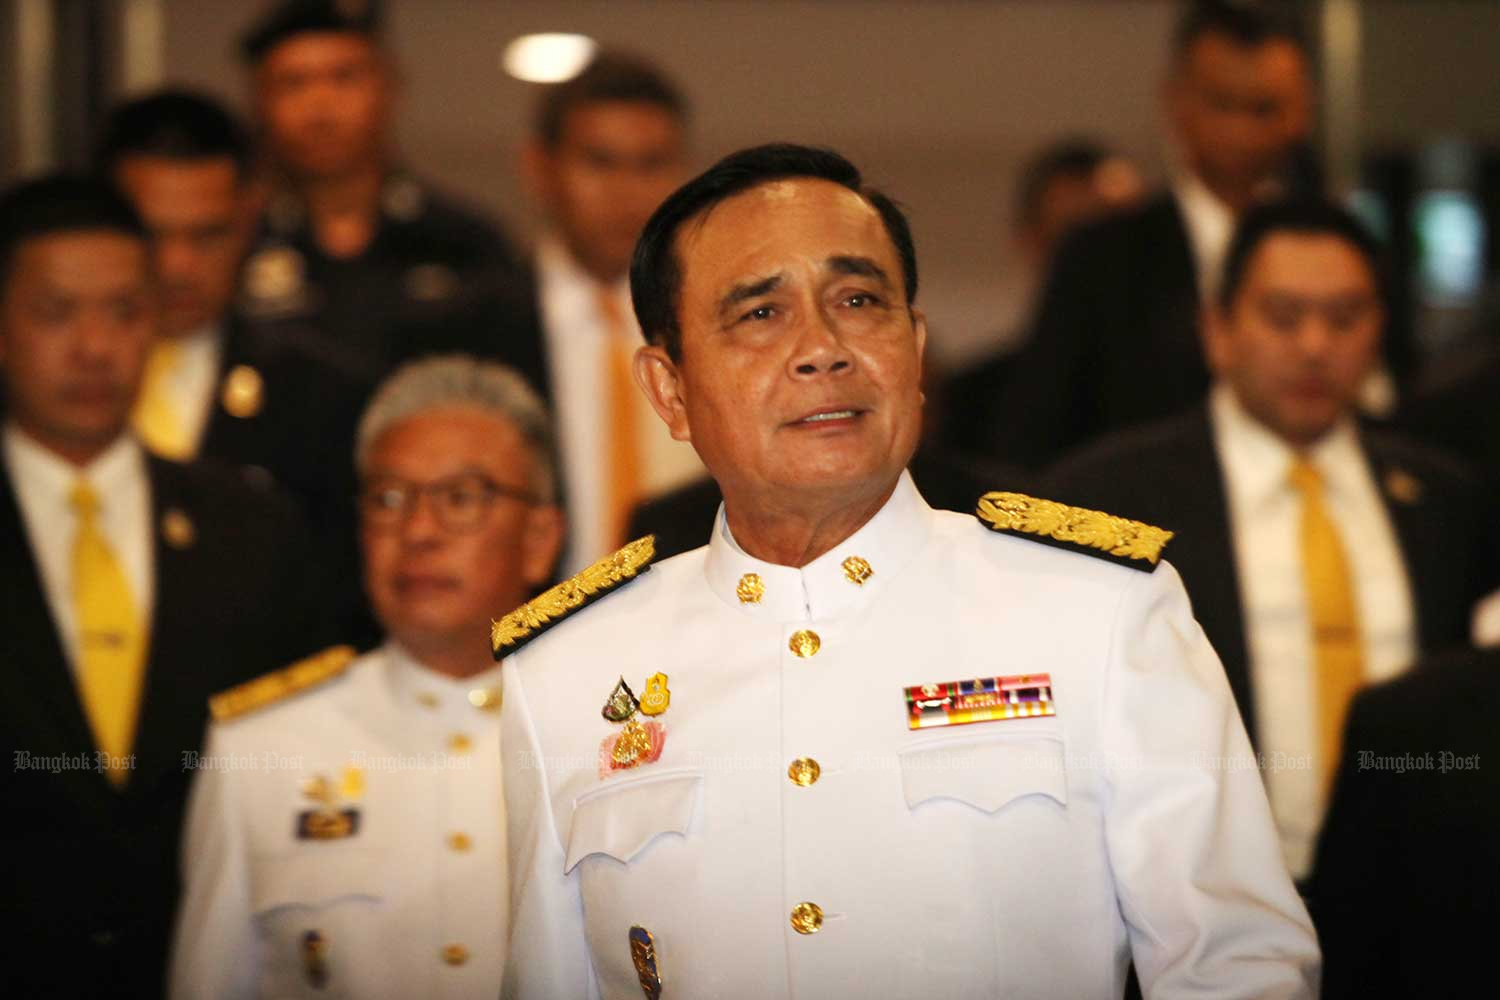 """Although he ran the country for five years in an unelected capacity, officially Prayut Chan-o-cha is just a retired soldier. The Constitutional Court is being asked to determine if being the junta head made him a """"state official"""", which would have barred him from standing as a prime ministerial candidate. (Photo by Wichan Charoenkiatpakul)"""